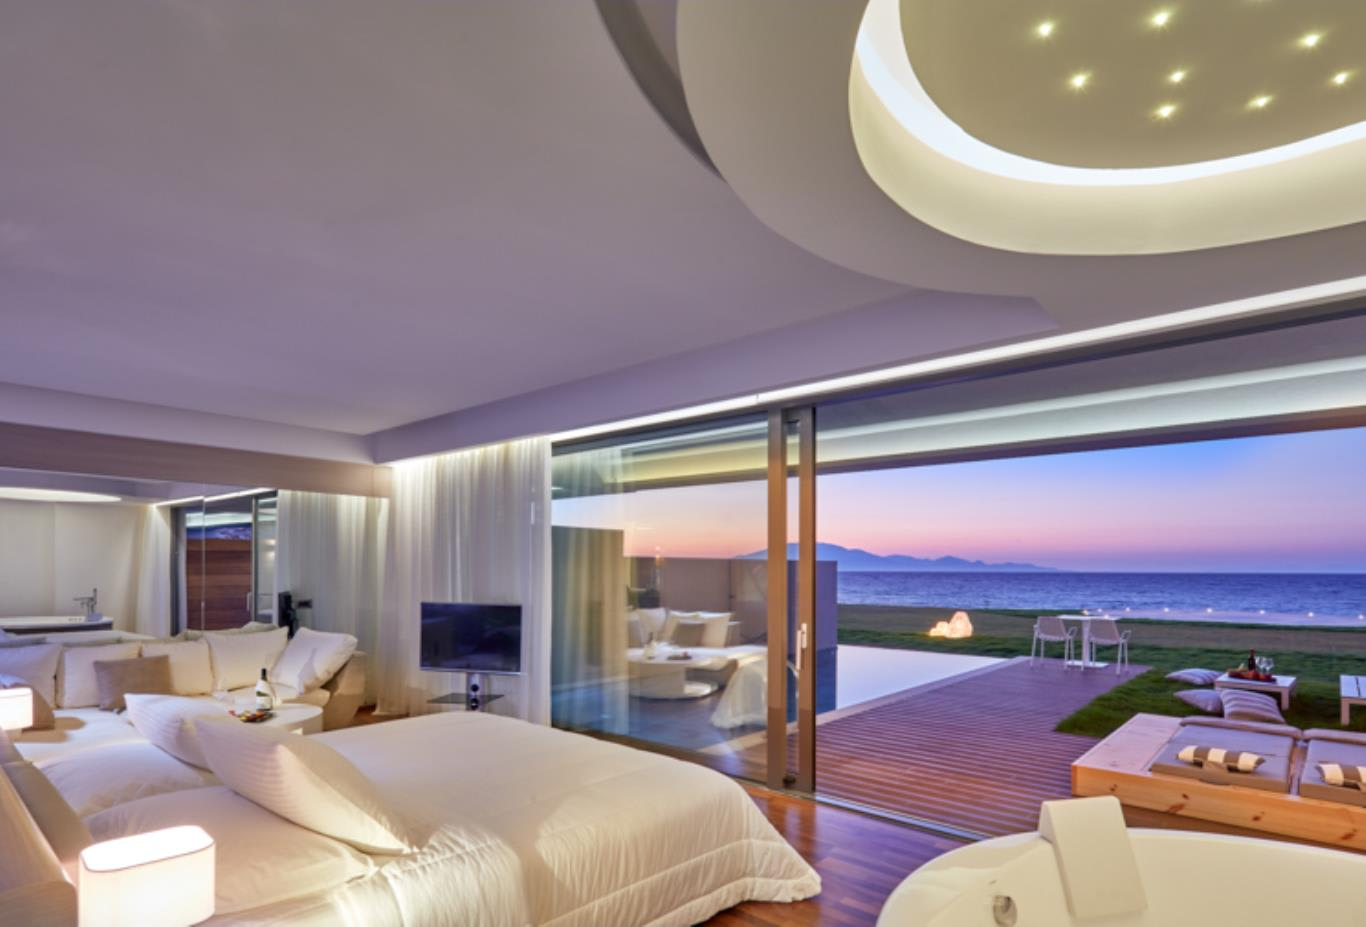 Deluxe Suite Sea View with Private Pool view